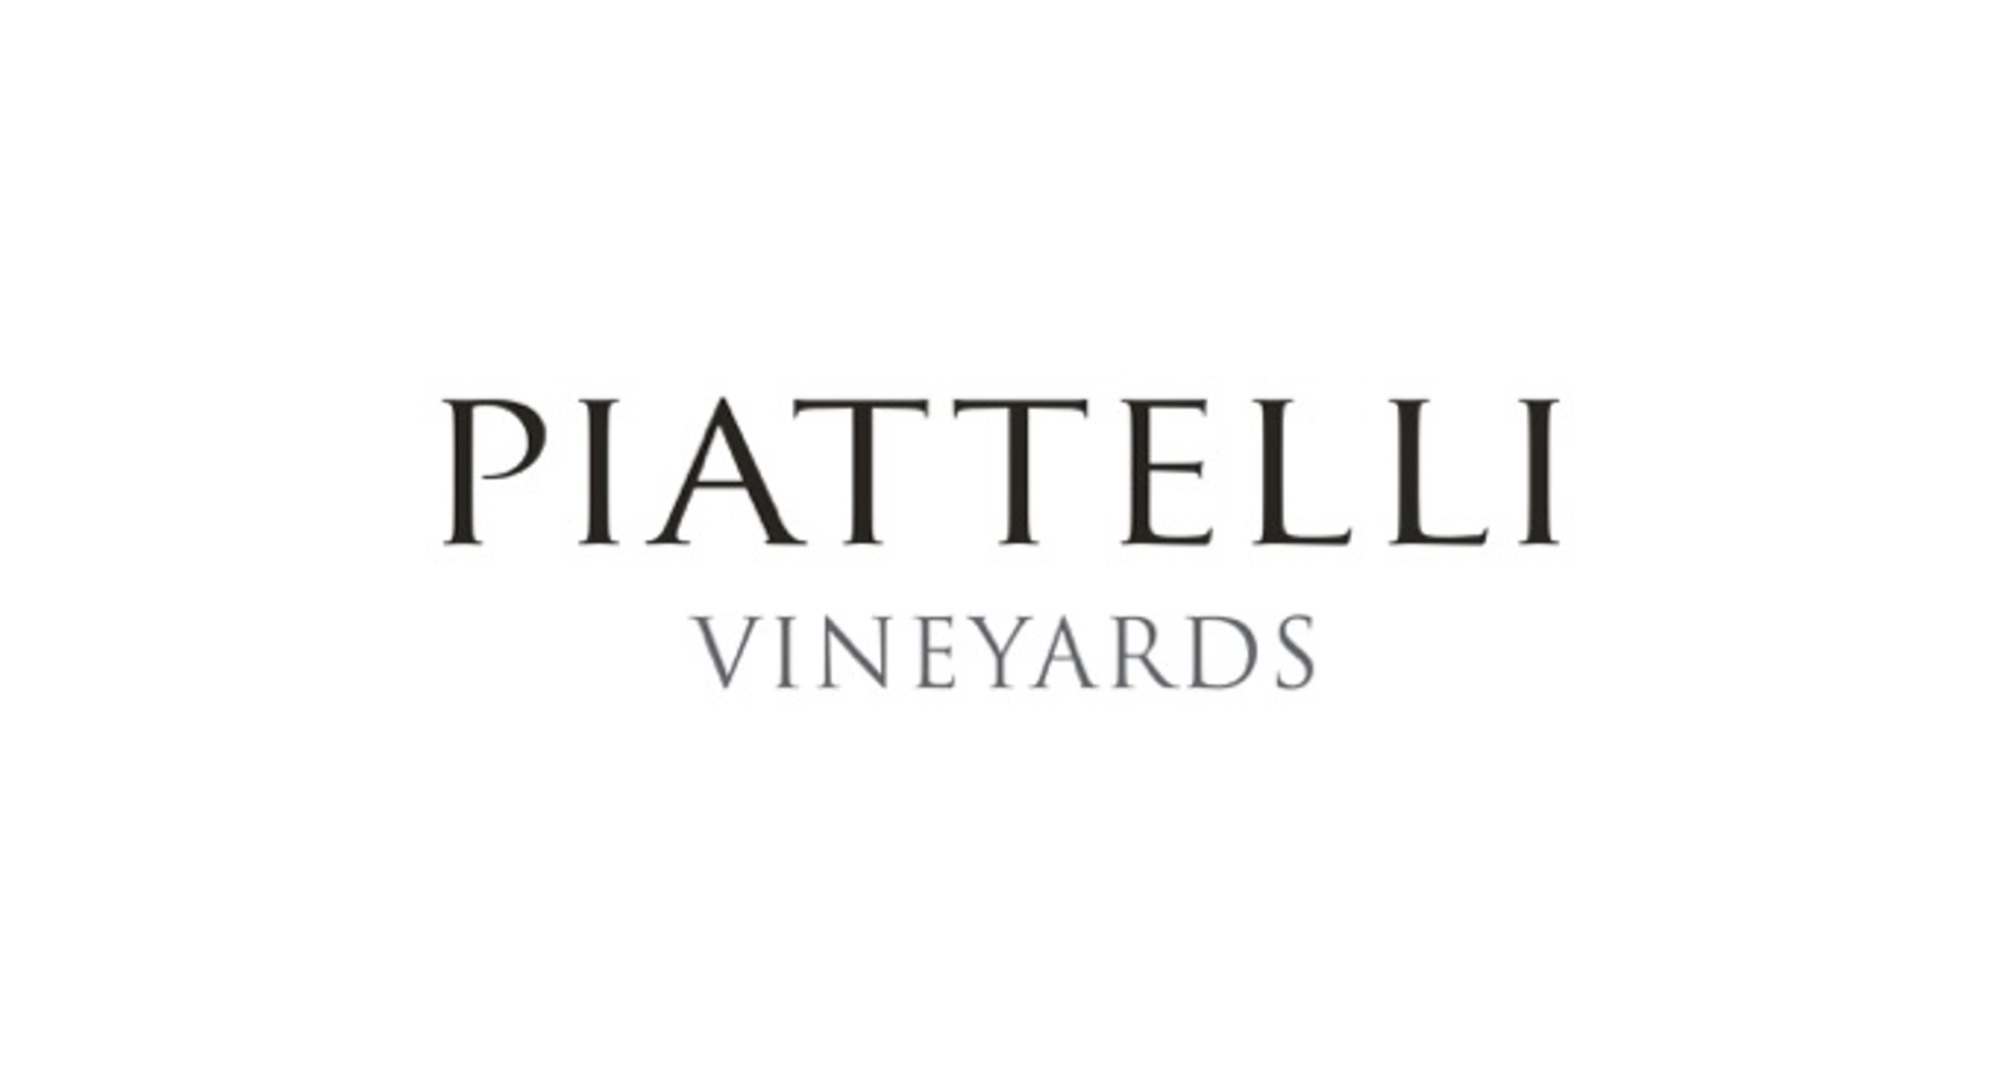 Logo piattelli vineyards